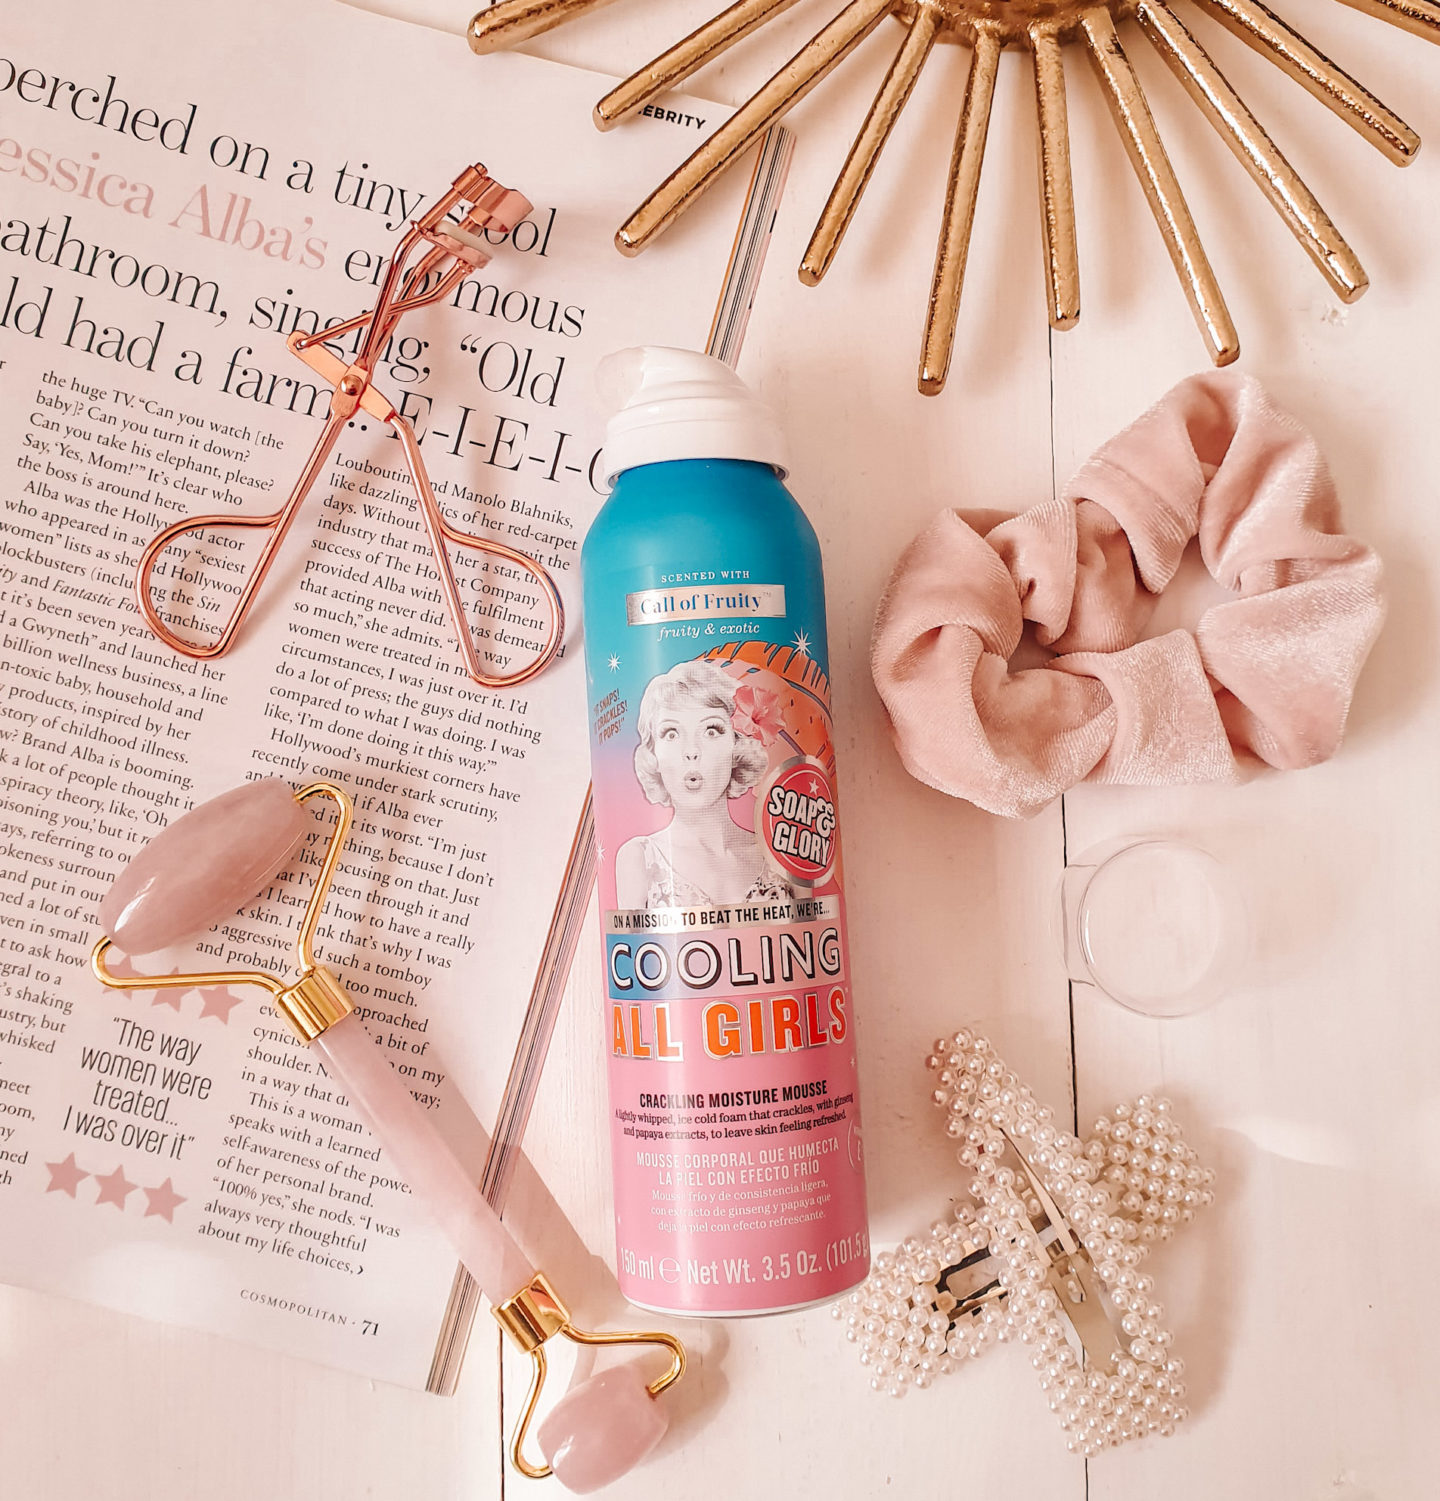 Soap and Glory Cooling All Girls Crackling Moisture Mousse